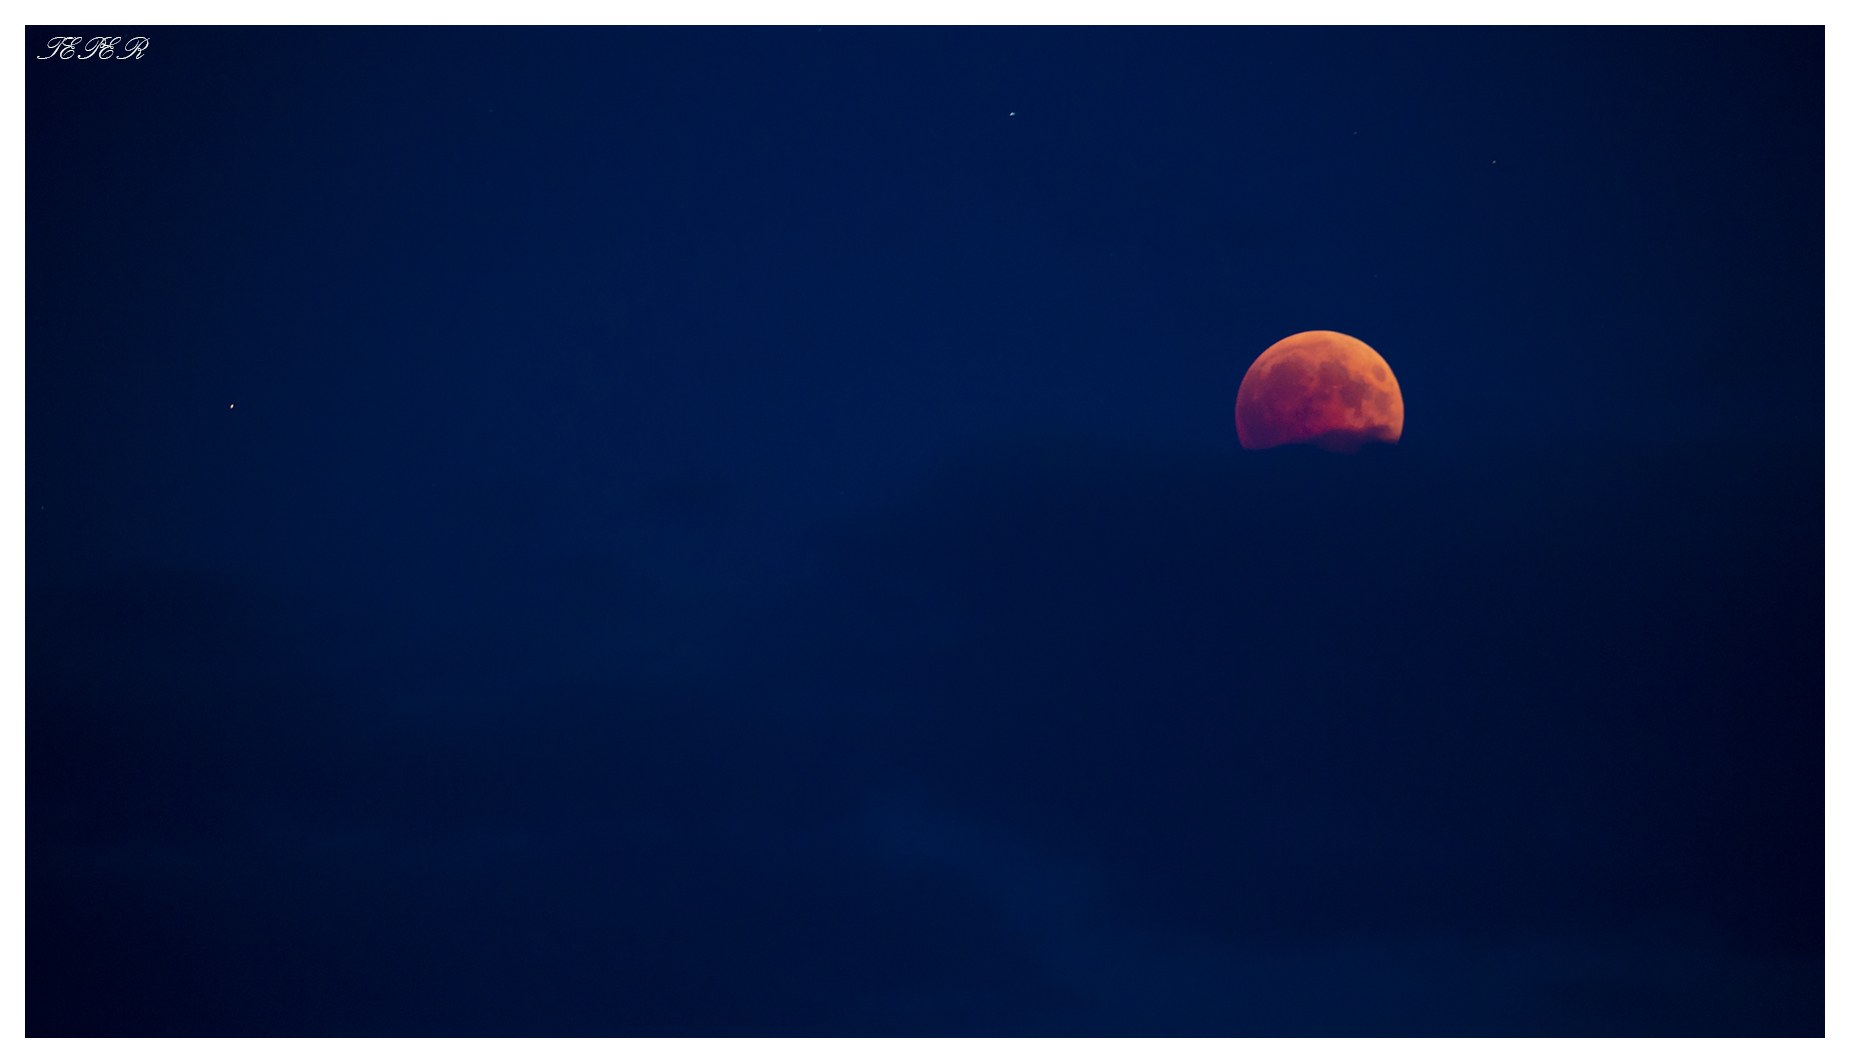 blood moon july 2018 england - photo #30